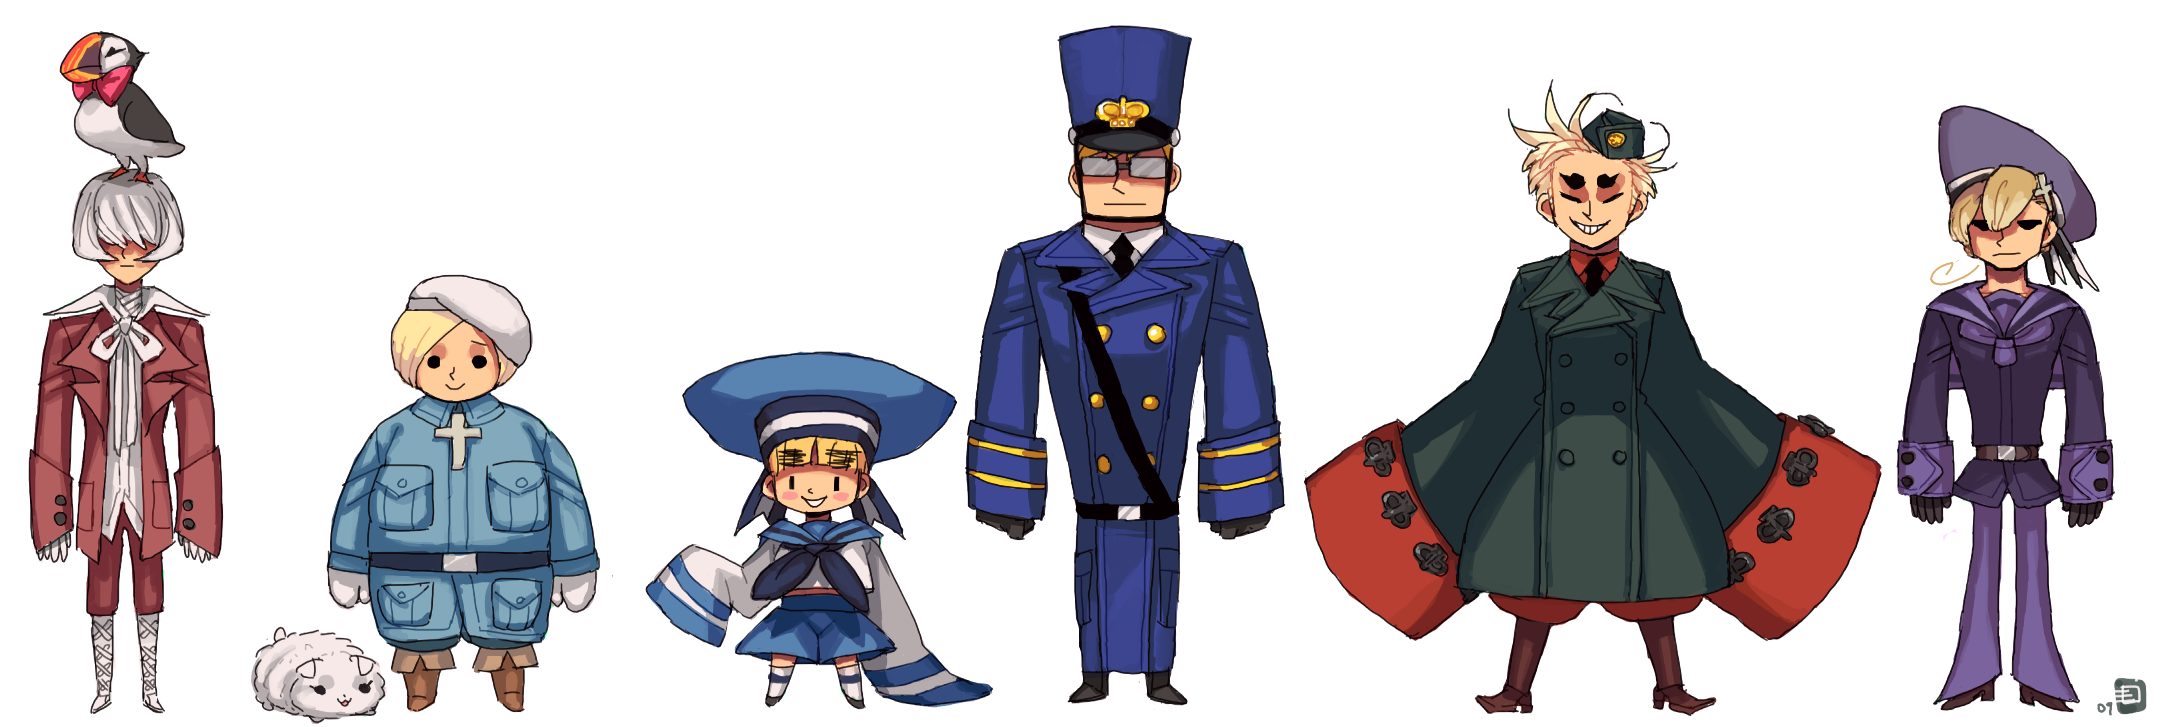 Tweaked Nordics by emlan on DeviantArt